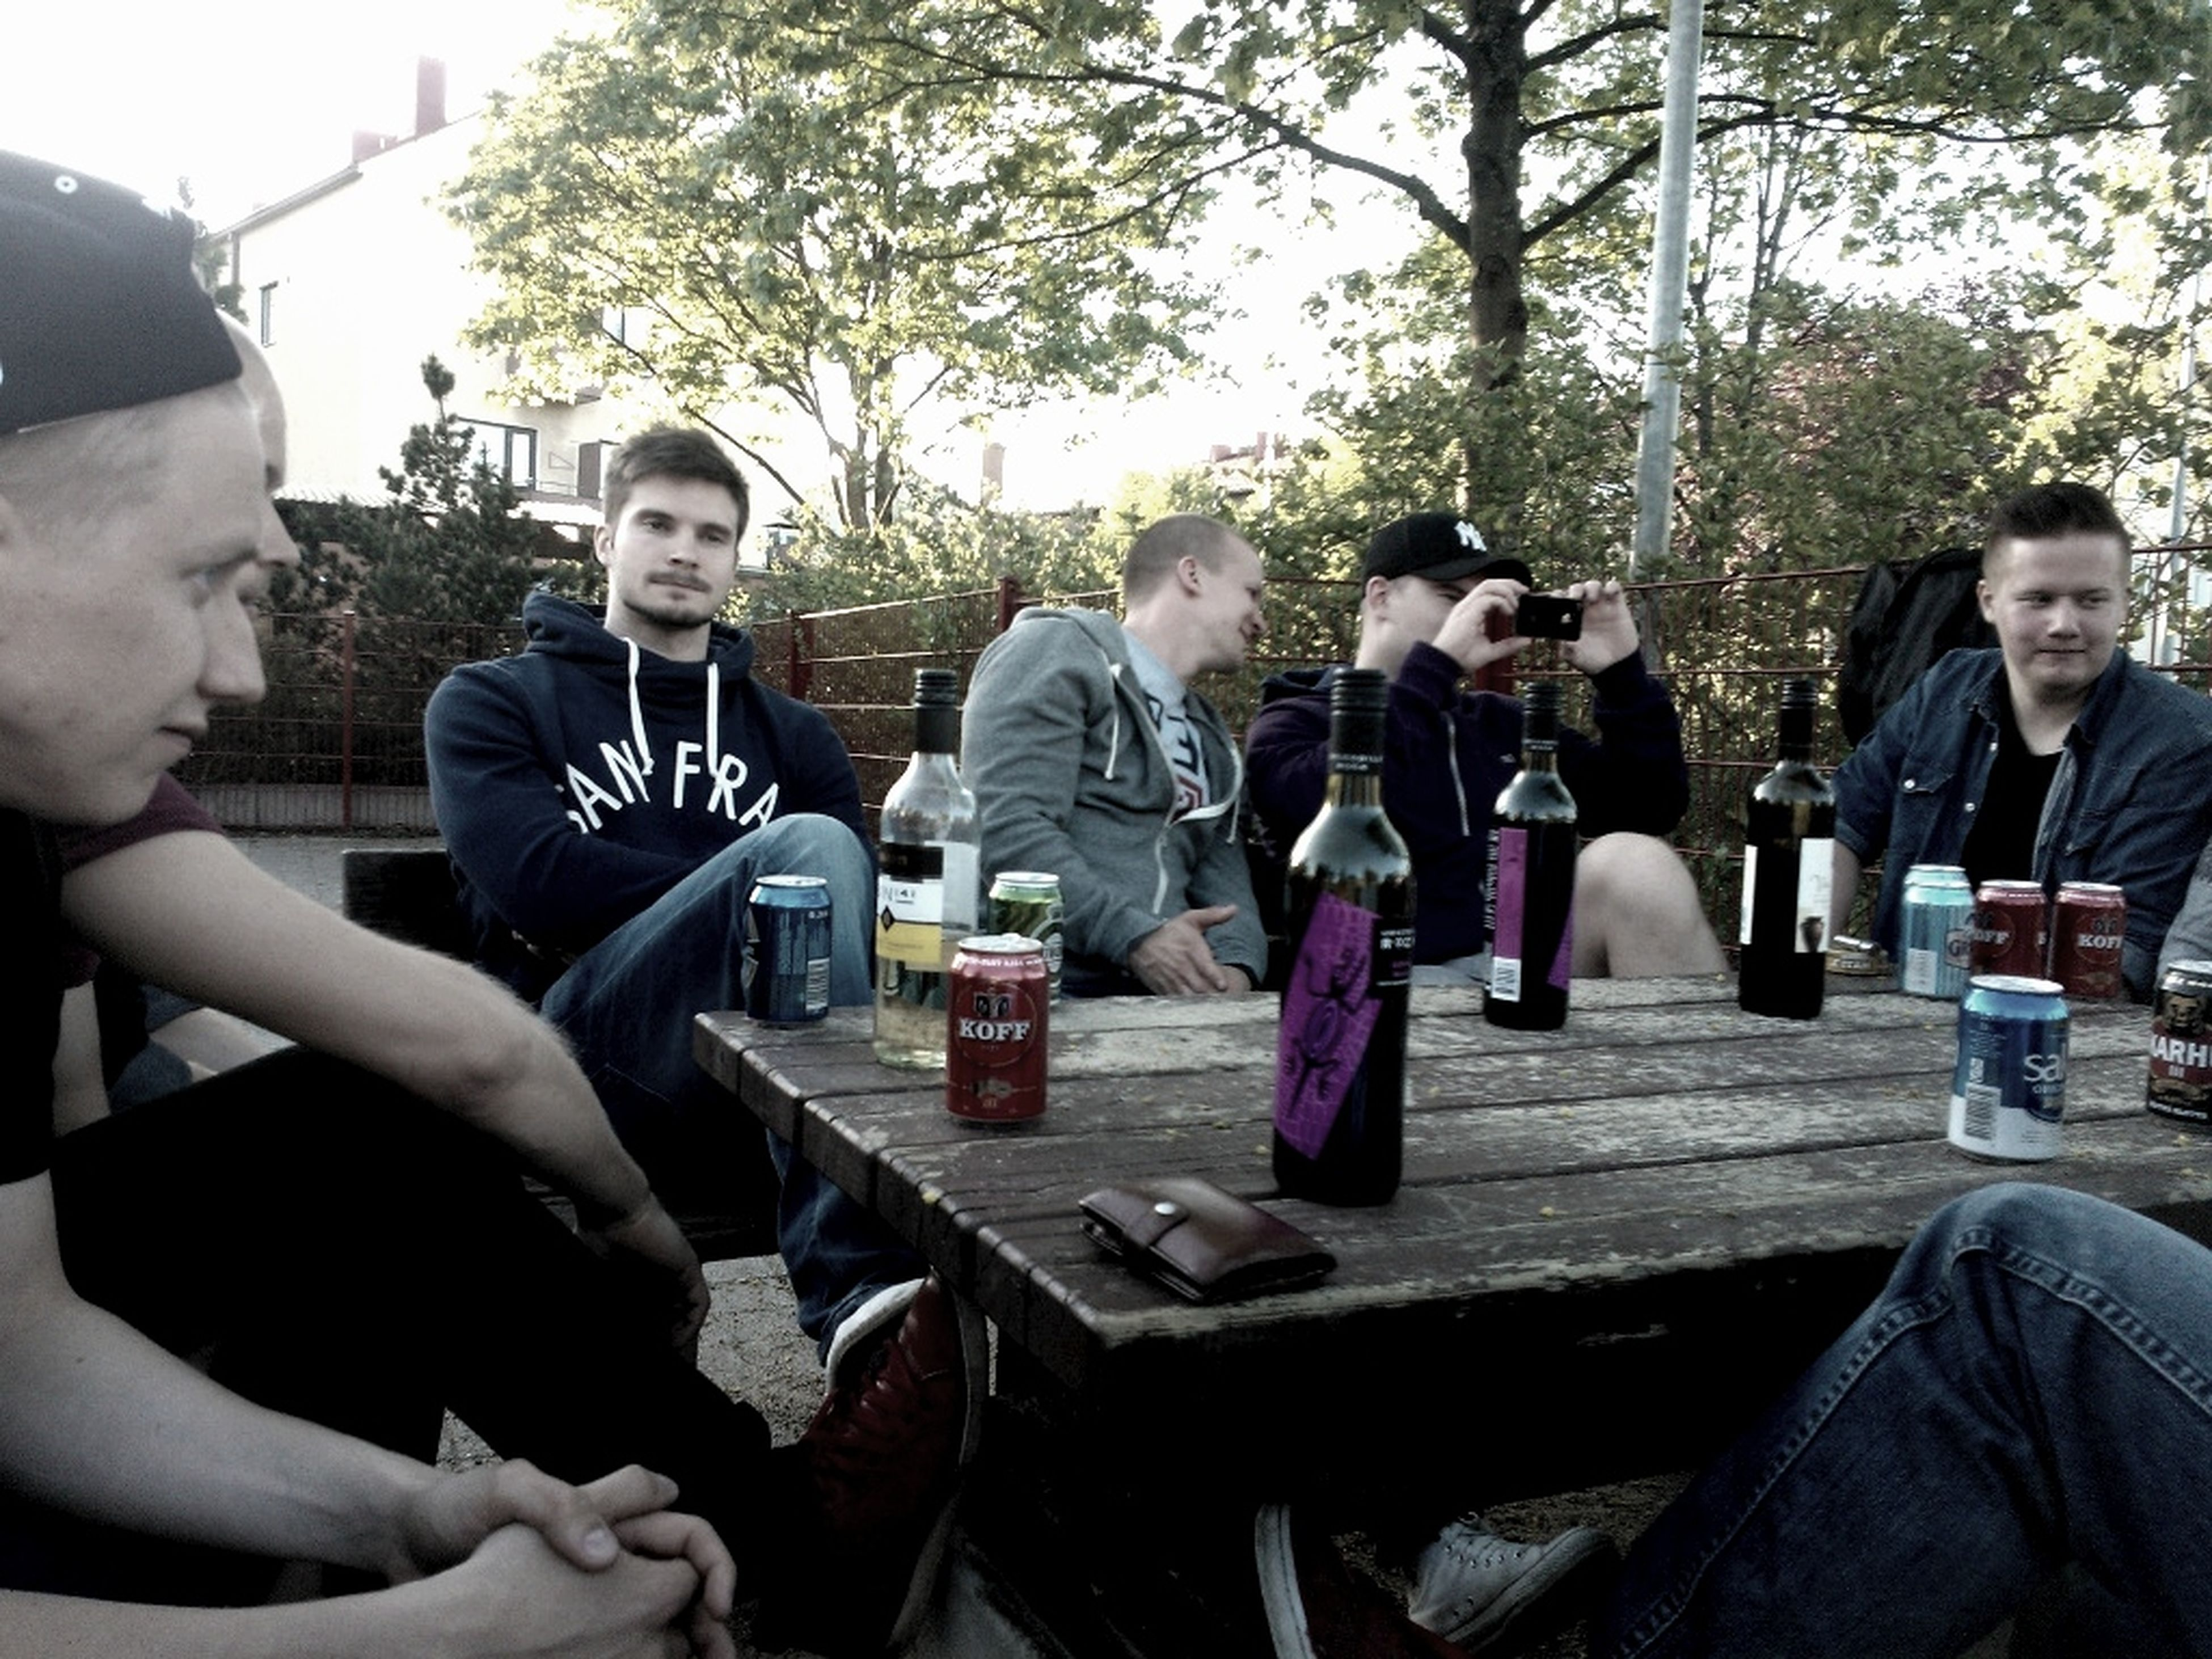 lifestyles, leisure activity, togetherness, casual clothing, friendship, bonding, sitting, person, young adult, love, tree, smiling, young men, portrait, looking at camera, happiness